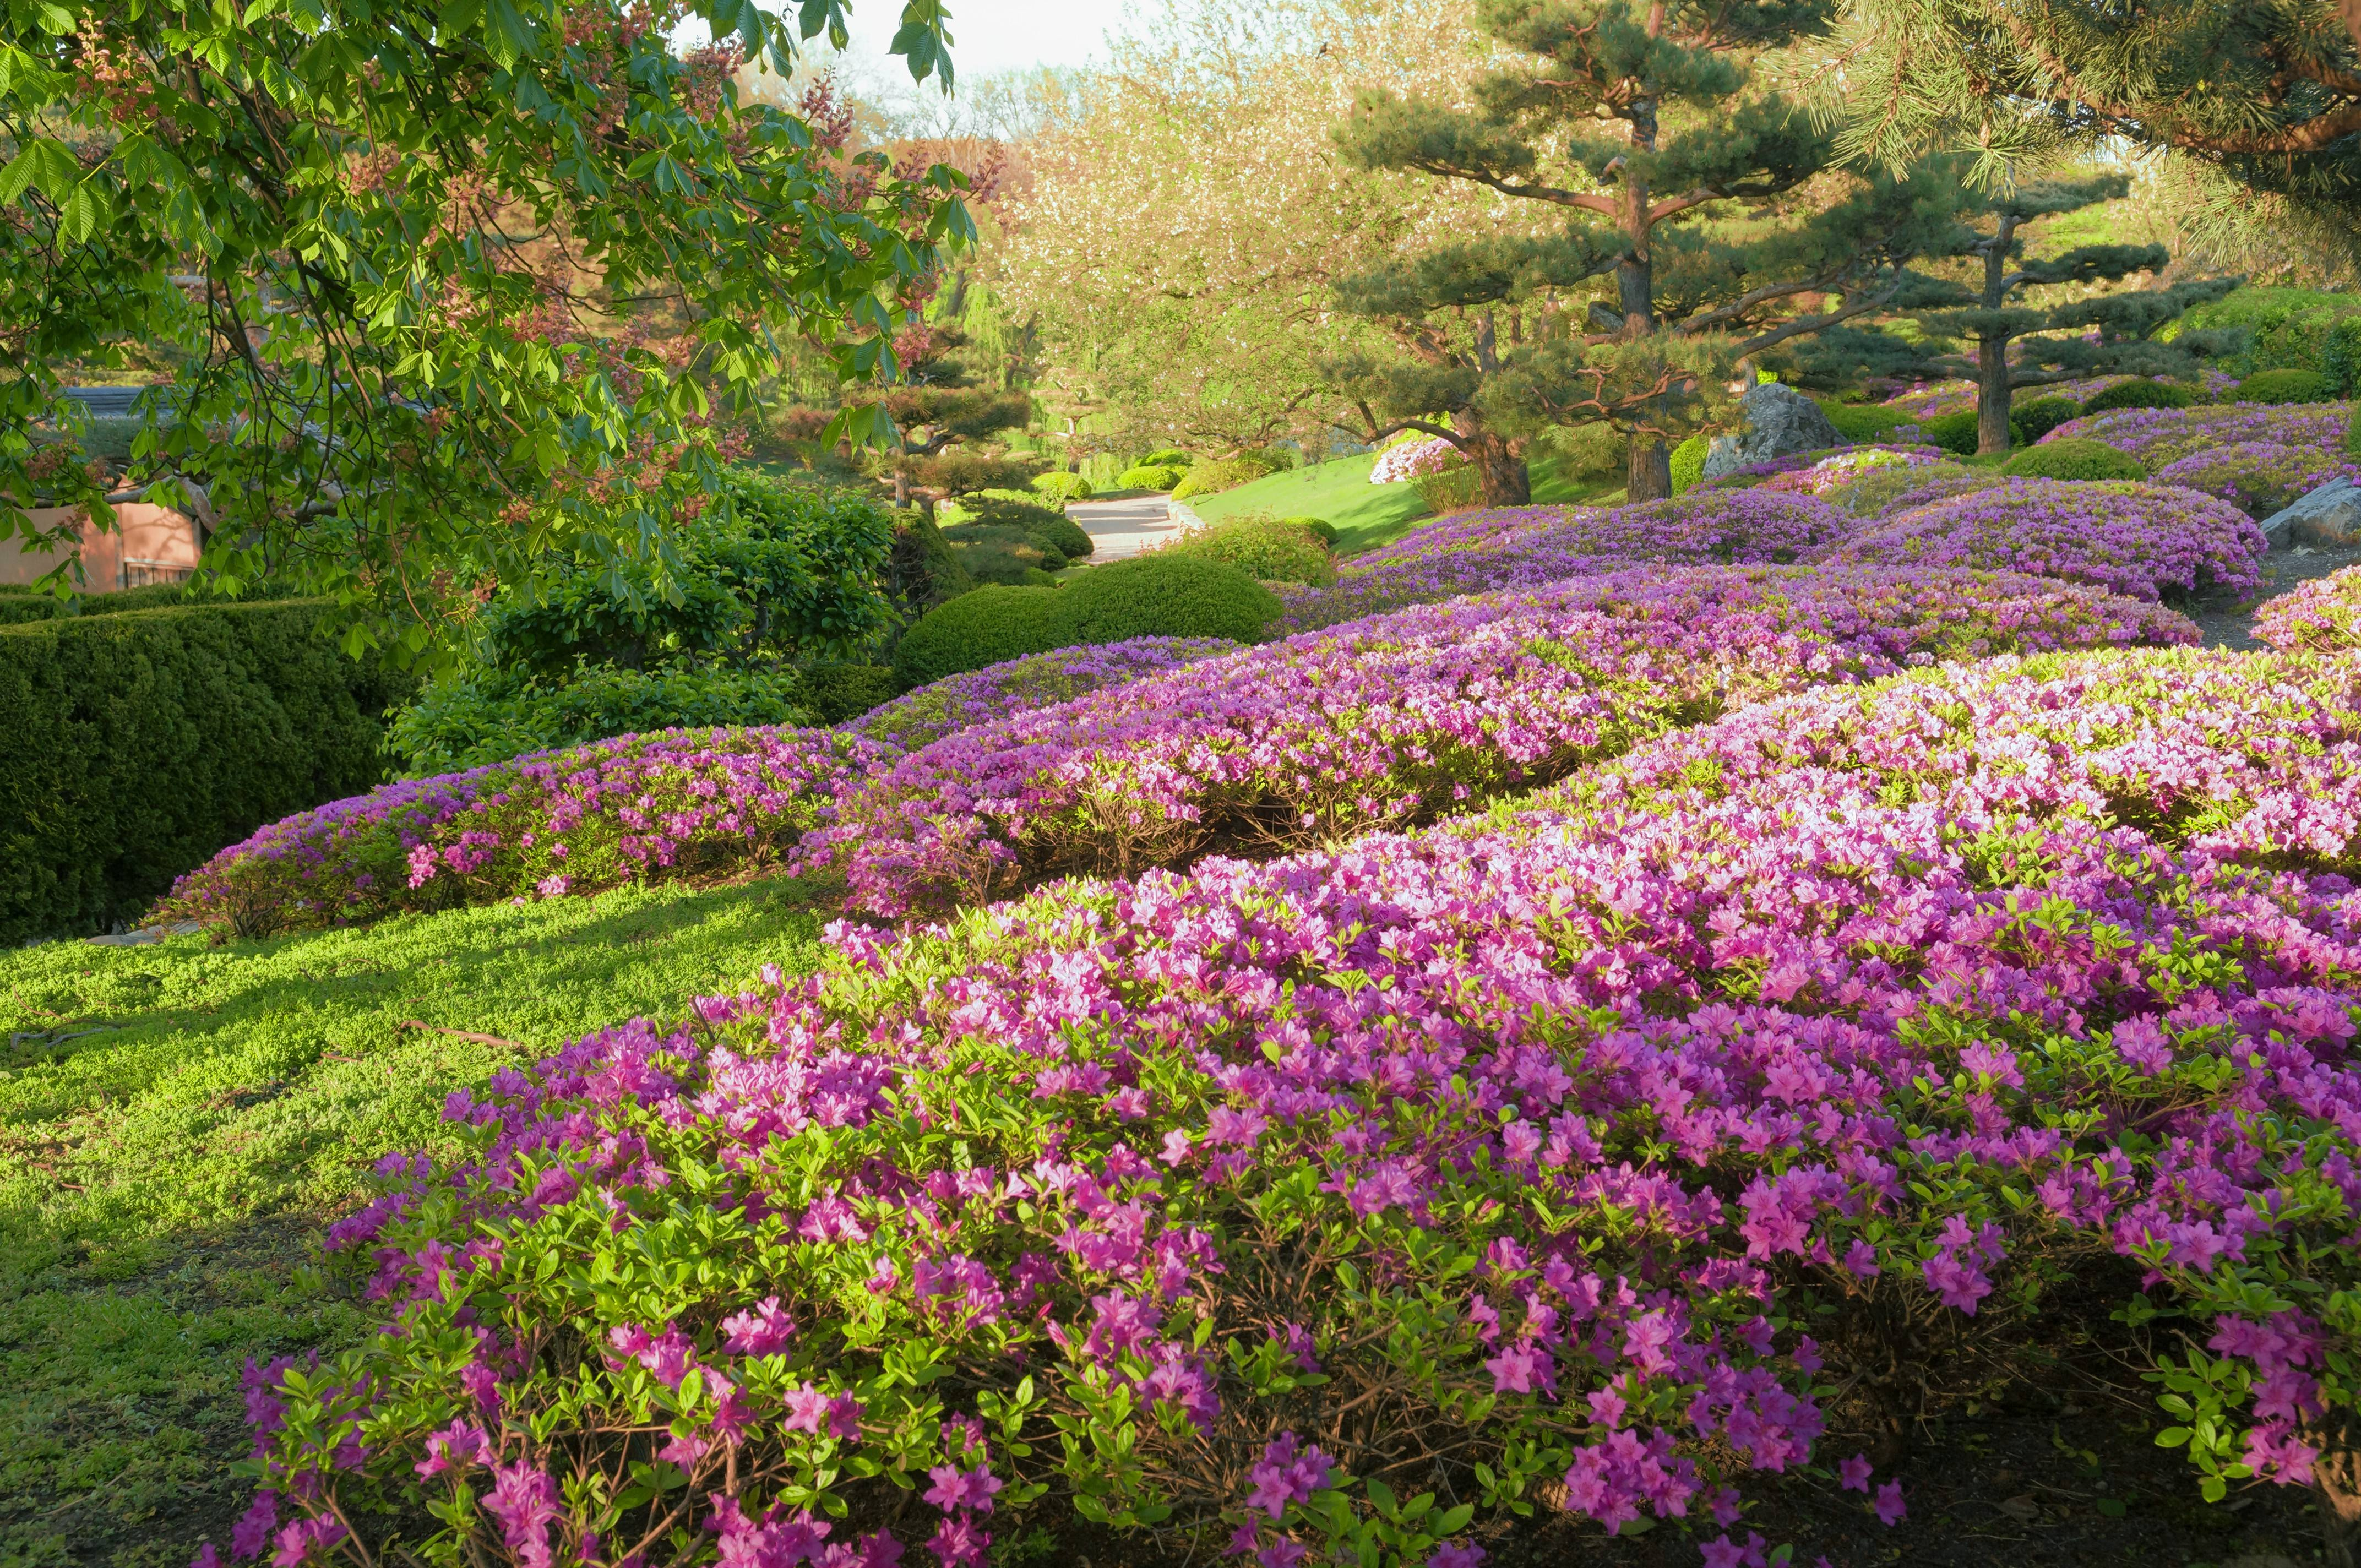 Azaleas are examples of plants that can benefit from sulfur applications in the Chicago area.